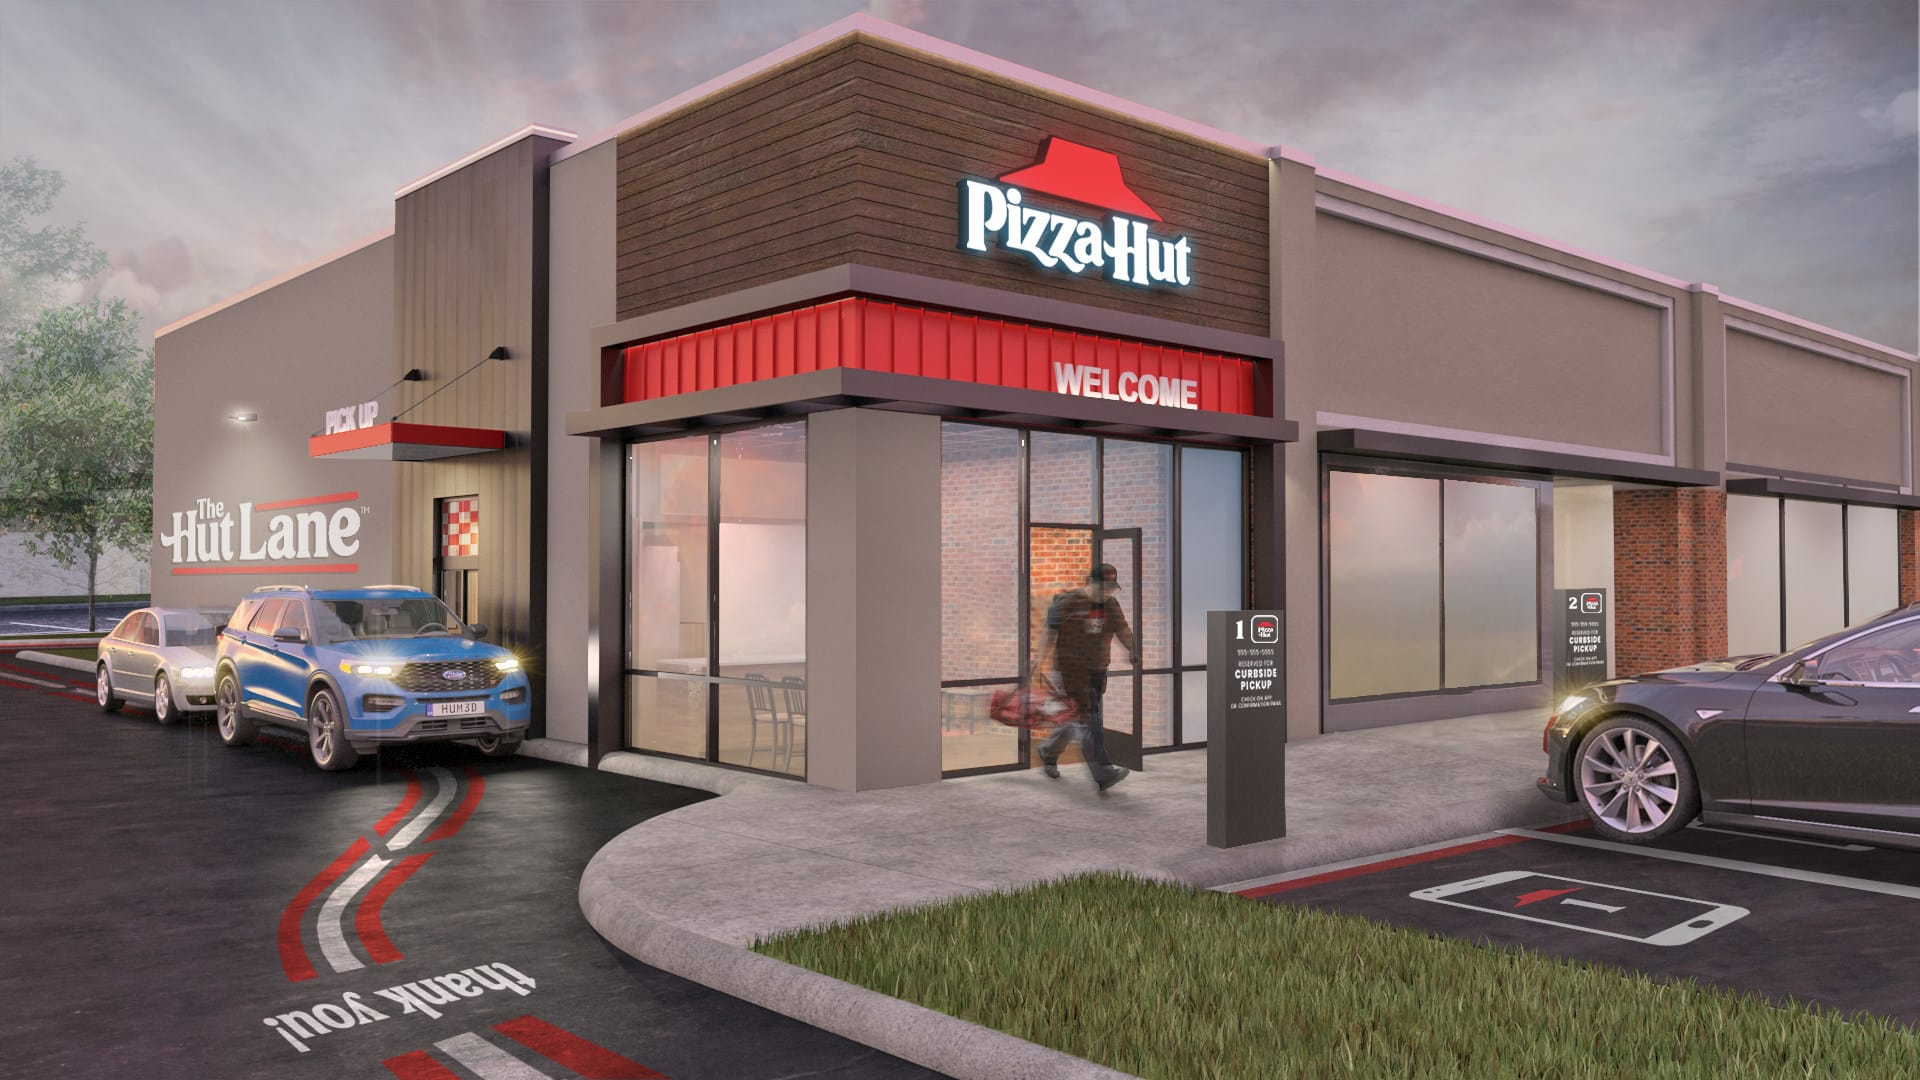 Pizza Hut Launches The Hut Lane - A Digital-First Carryout Option